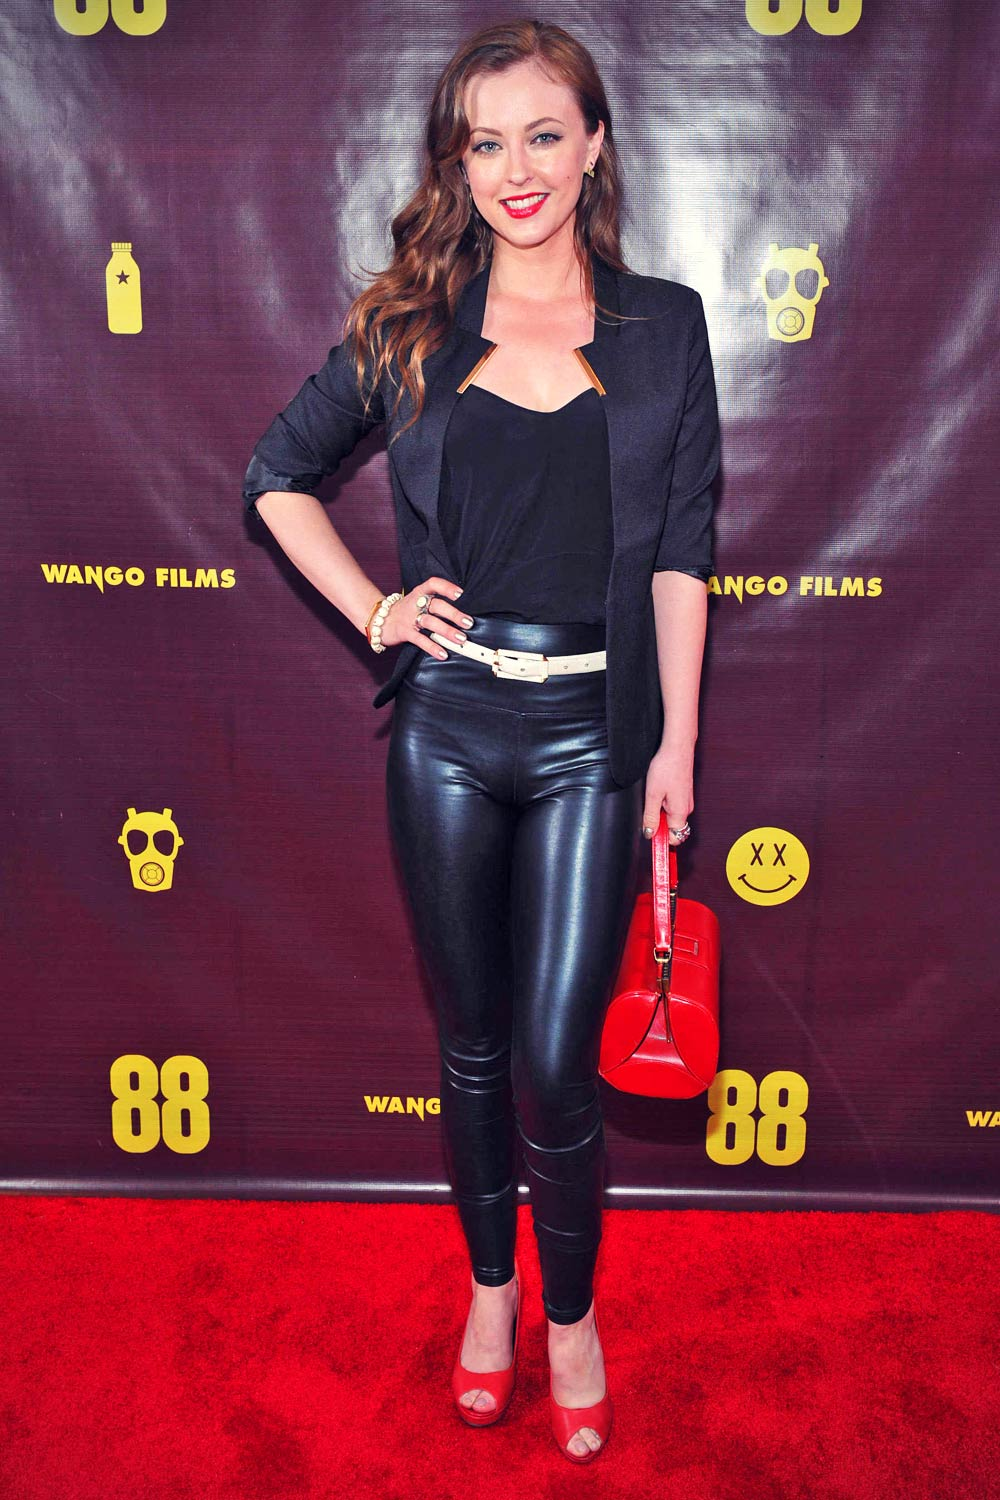 Katharine Isabelle attends the 88 Canadian premiere